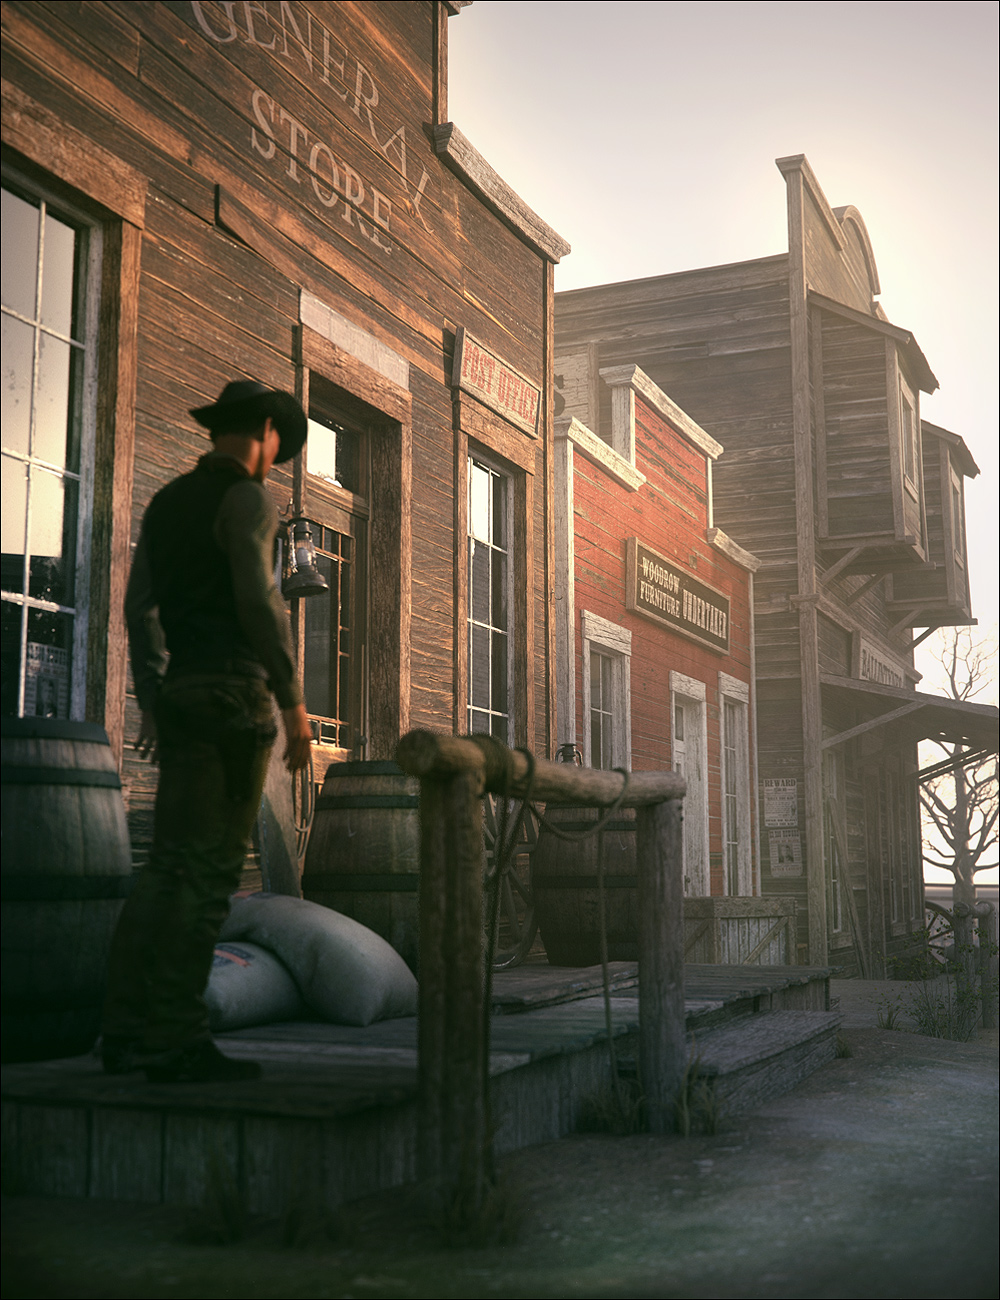 The Streets Of The Wild West by: Stonemason, 3D Models by Daz 3D